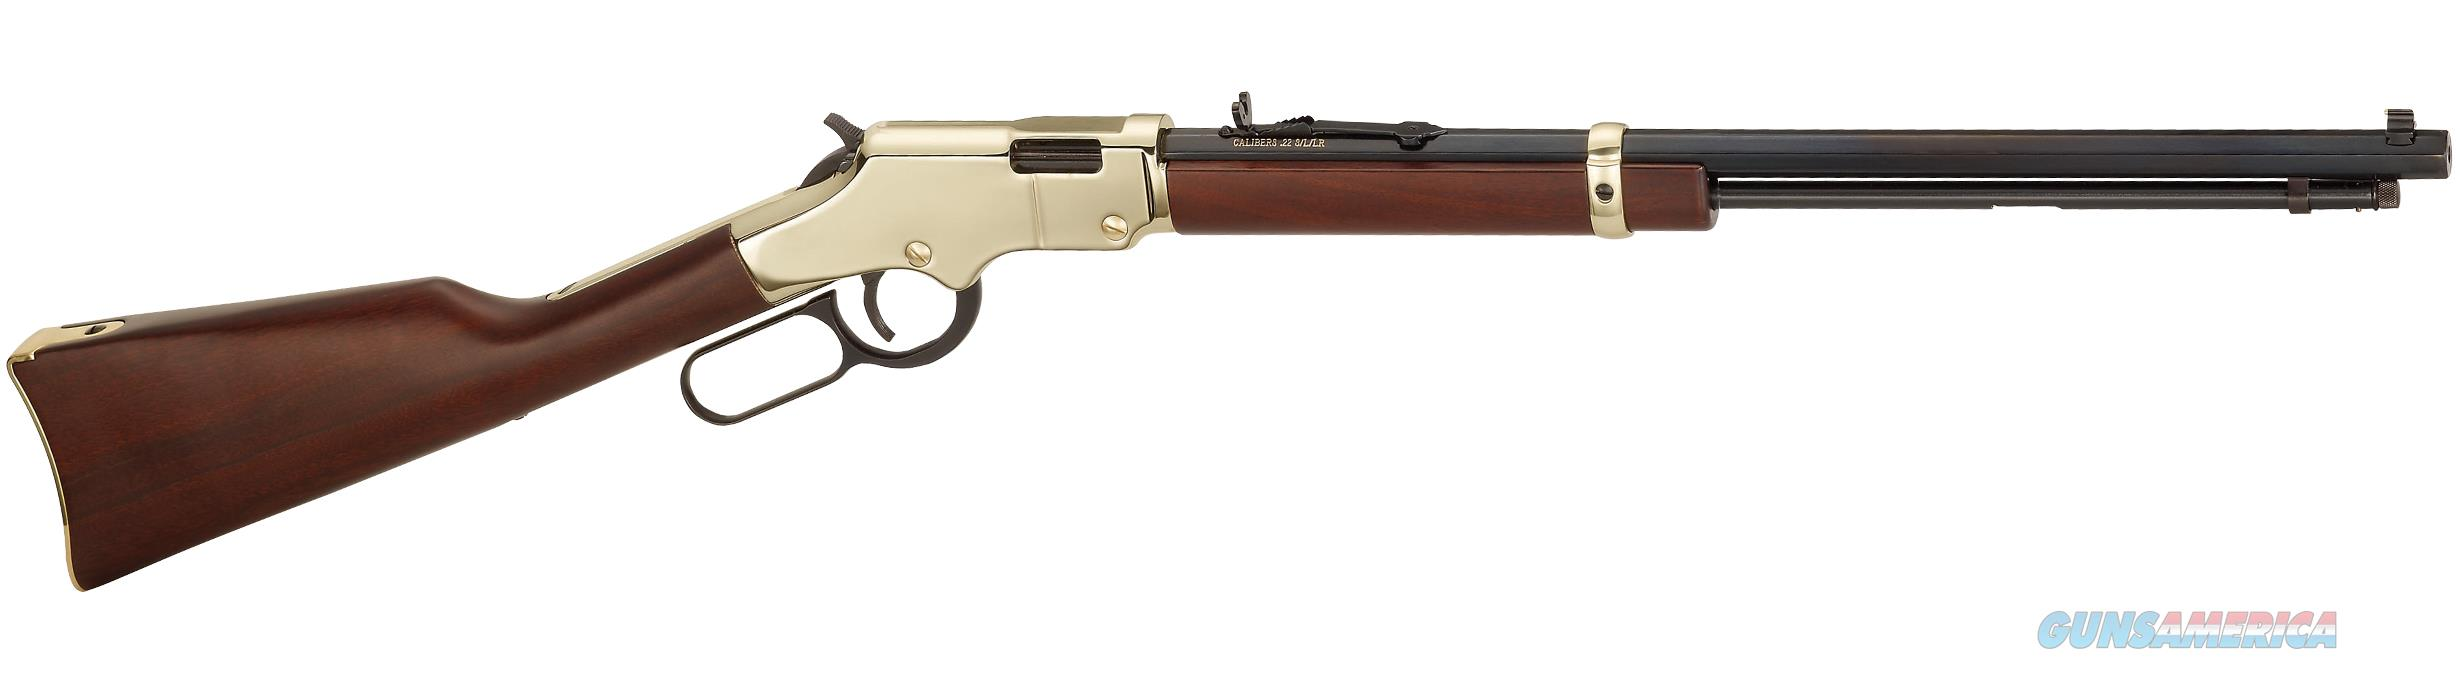 Henry Golden Boy .22 rifle  Guns > Rifles > Henry Rifle Company